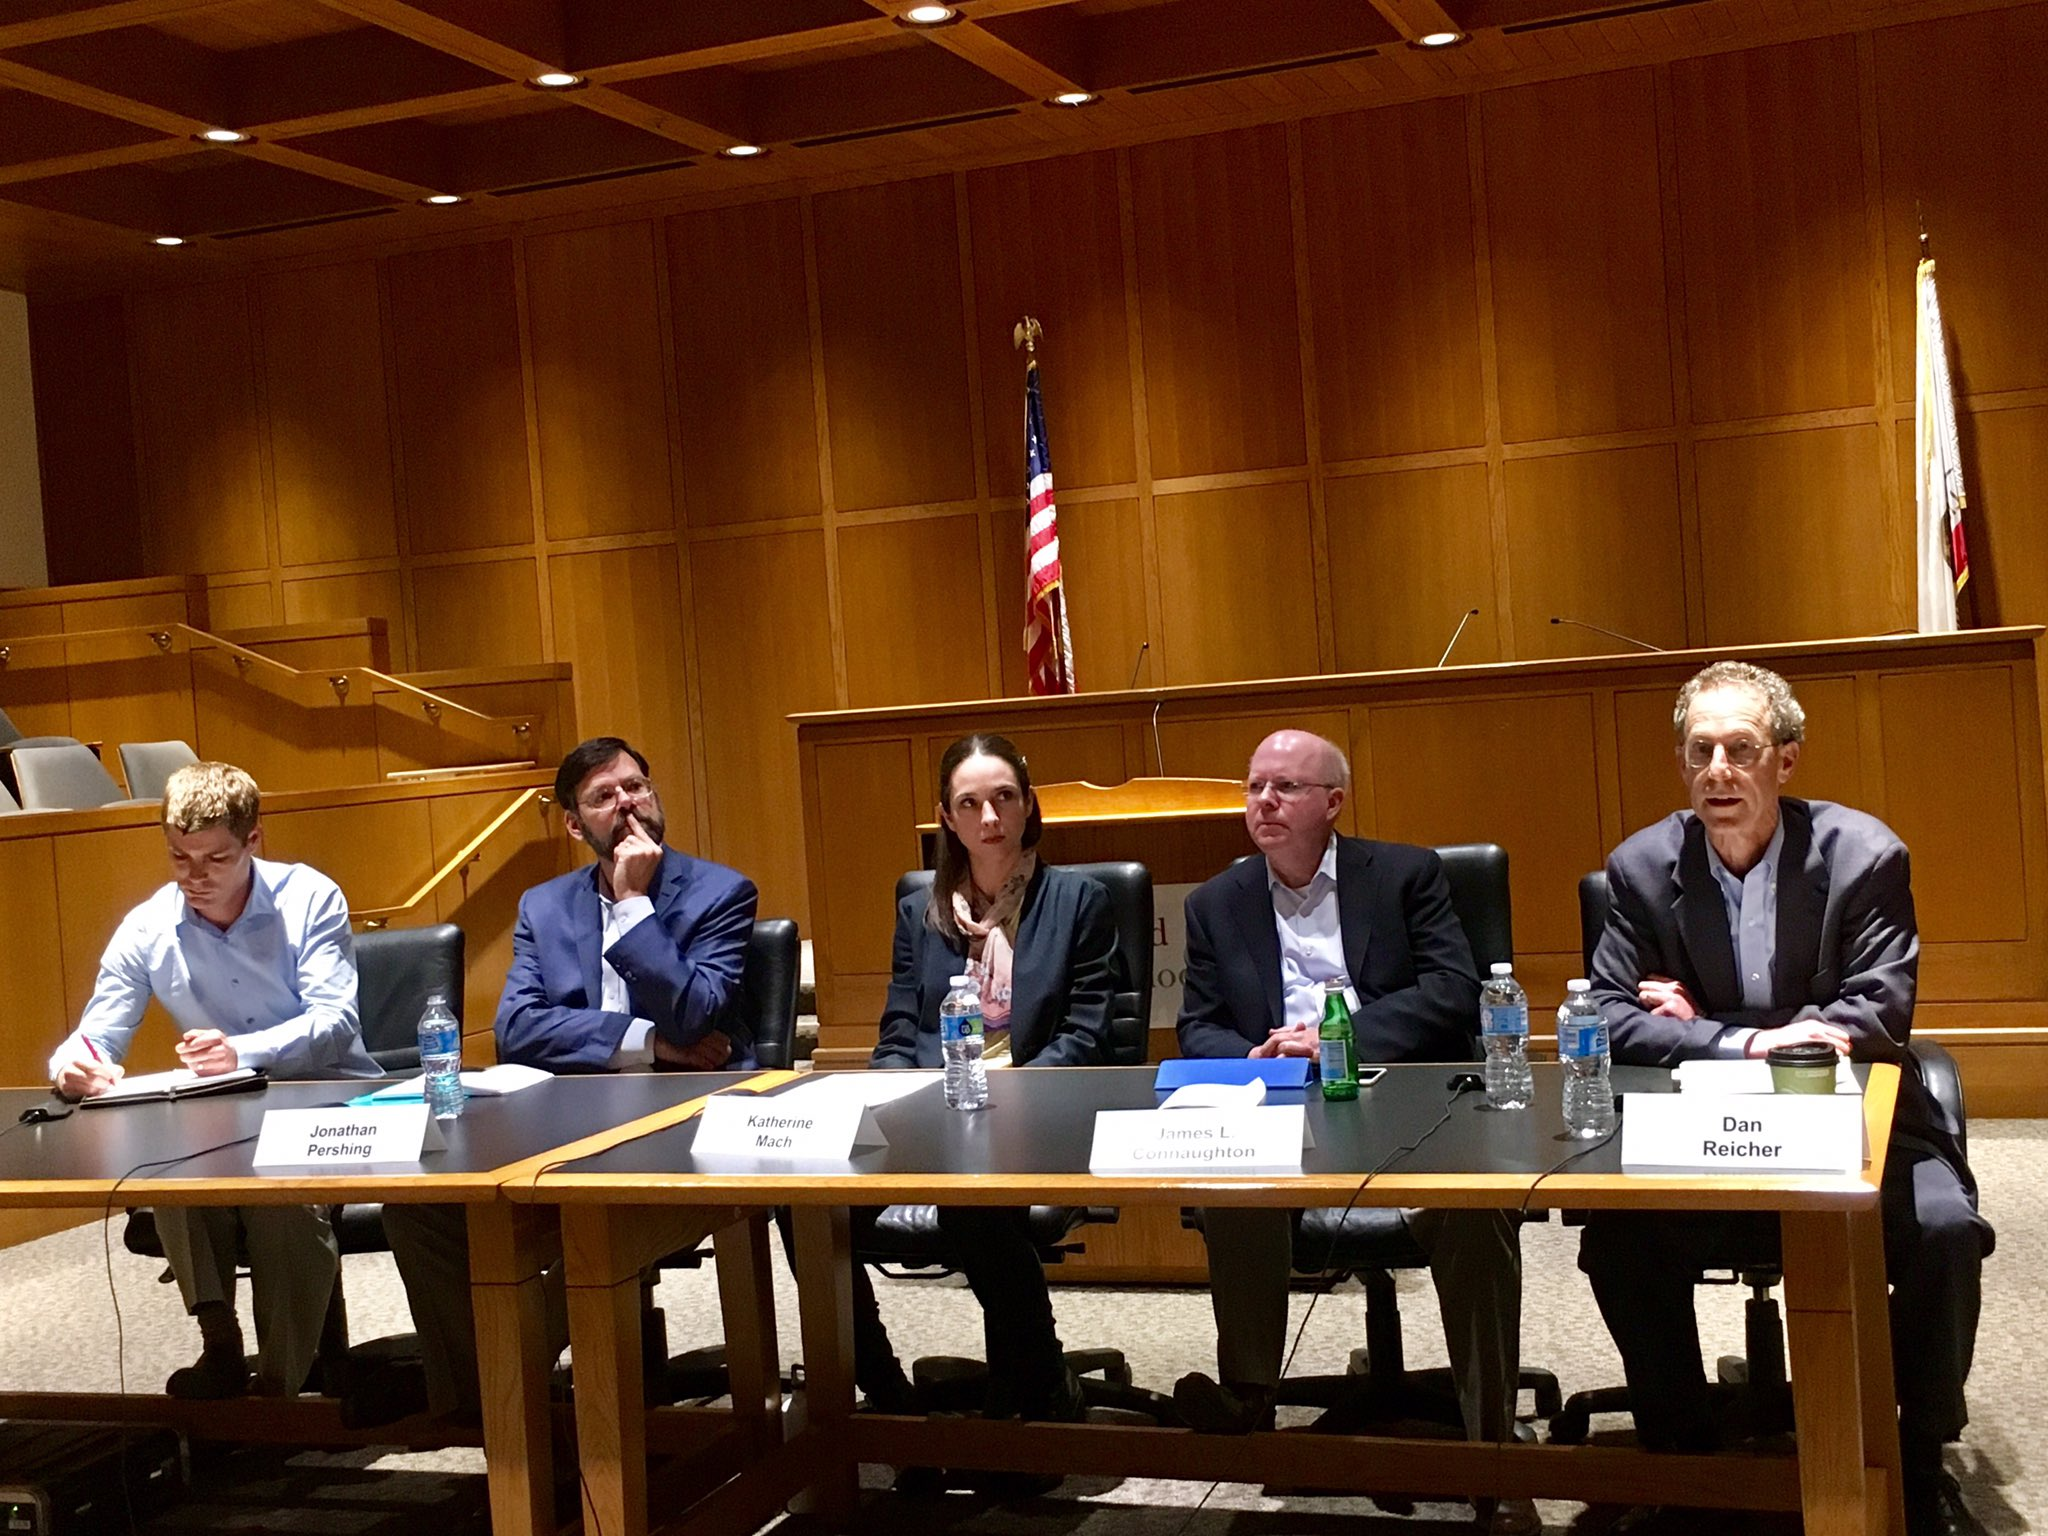 Happening now: Our bipartisan panel discussing the energy & climate implications of the Trump Administration's first 100 days @StanfordLaw https://t.co/CTEIL6SM25